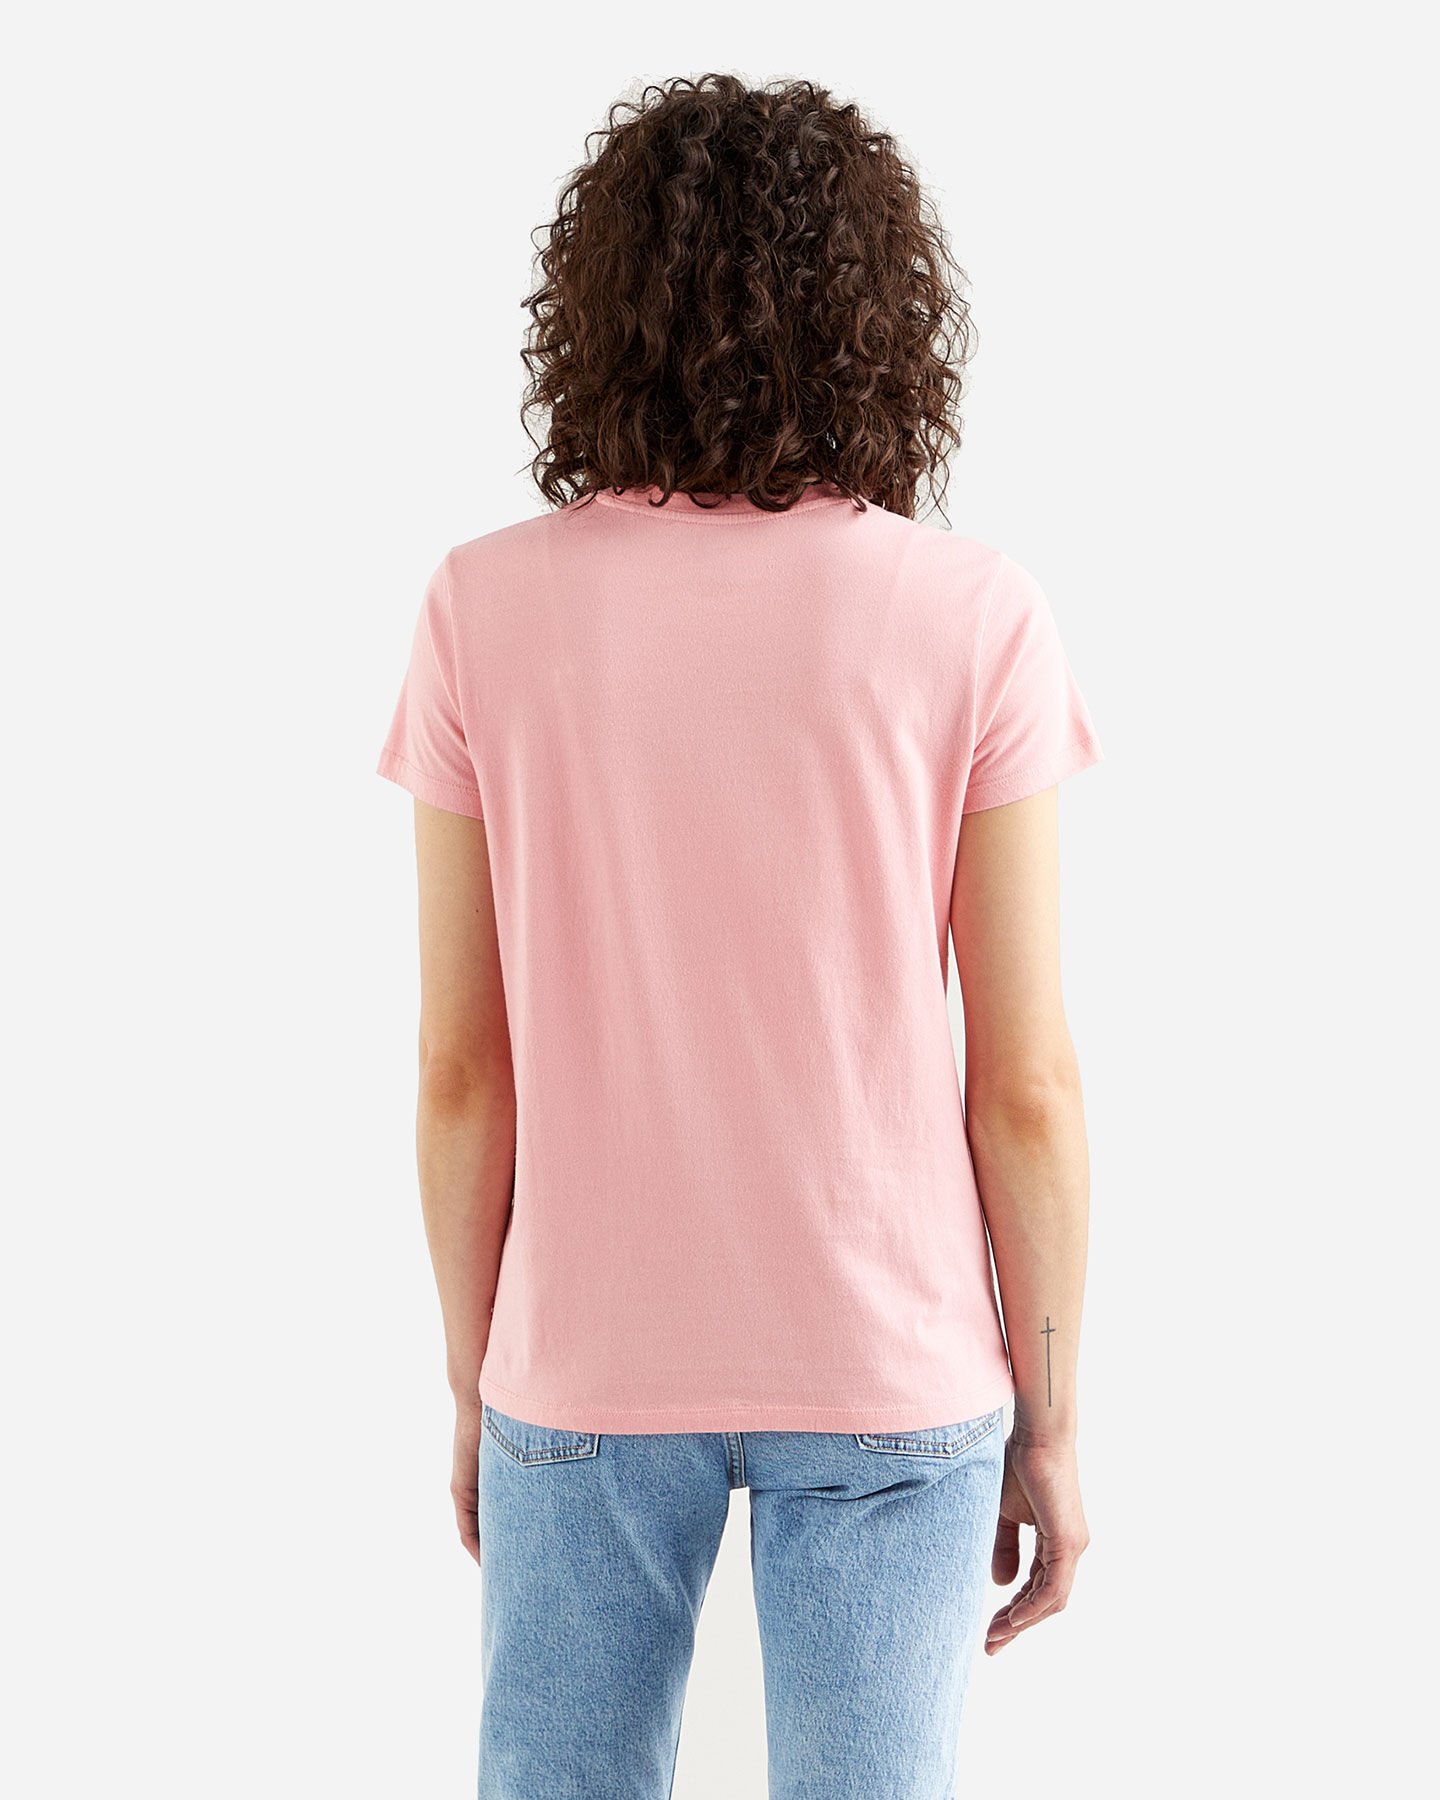 T-Shirt LEVI'S LOGO BATWING ST LEAF W S4088772 scatto 2